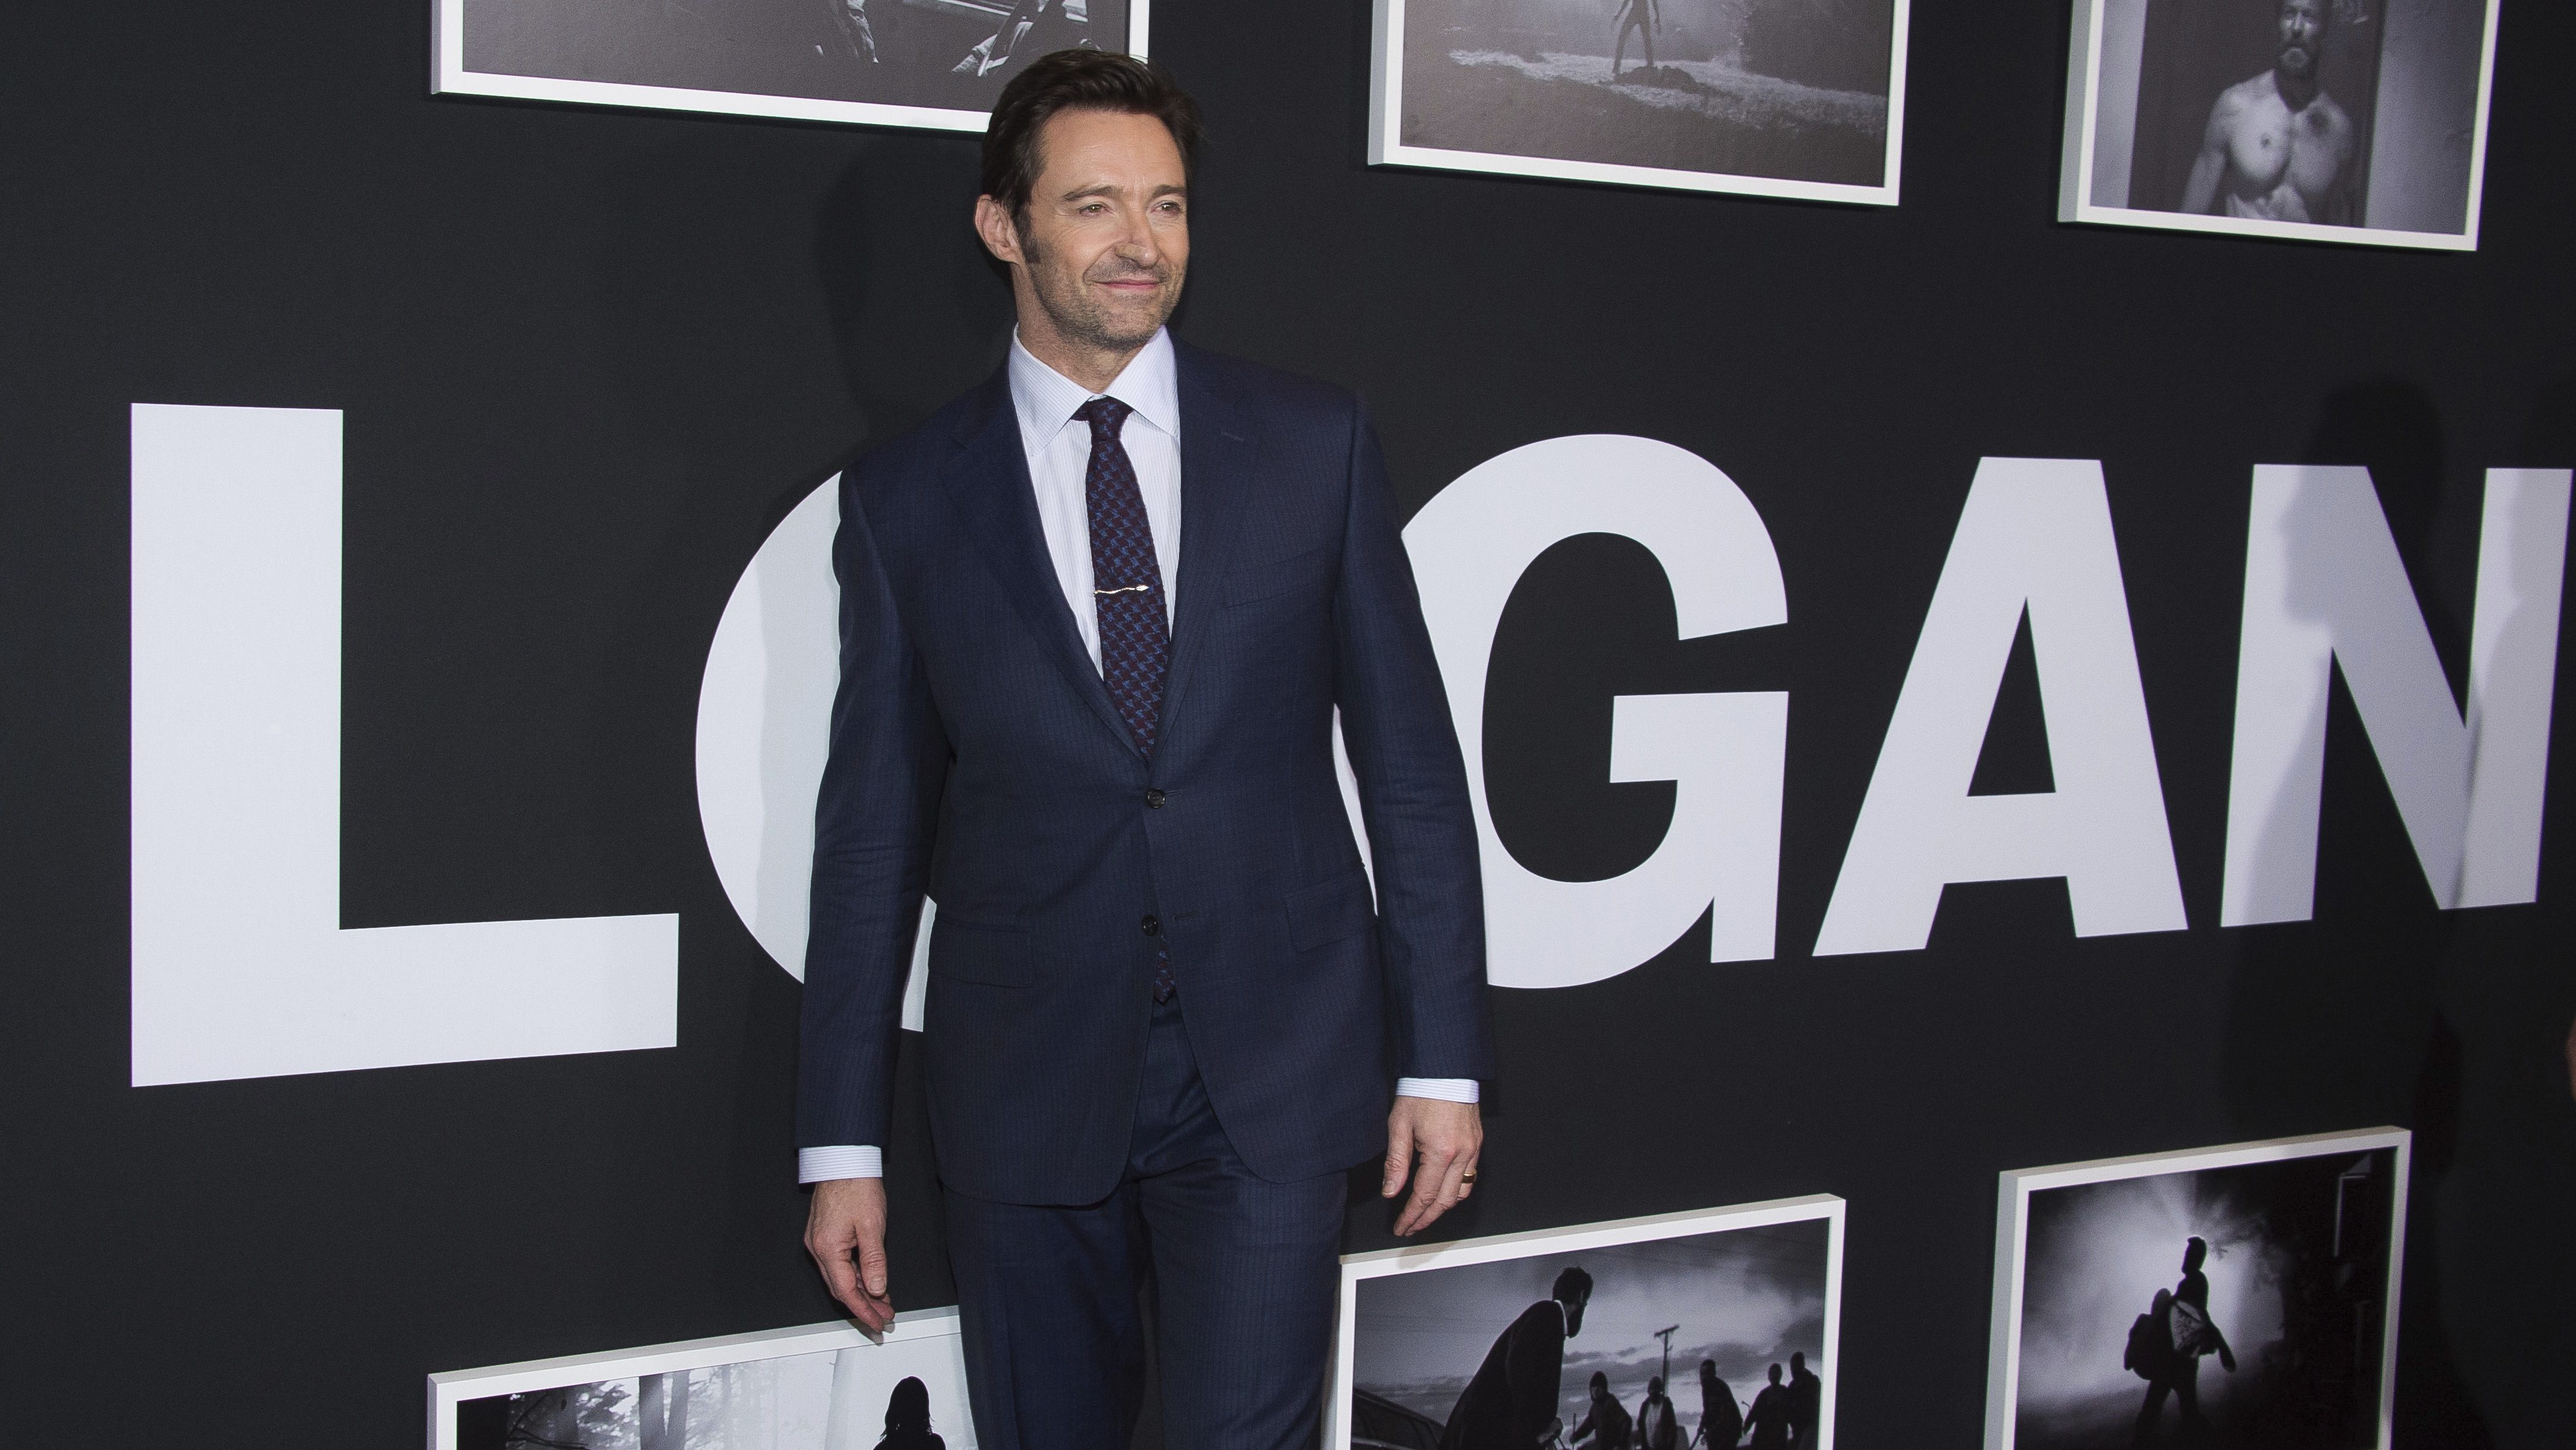 """Hugh Jackman attends a screening of """"Logan"""" at Jazz at Lincoln Center's Frederick P. Rose Hall, on Friday, Feb. 24, 2017, in New York. (Photo by Charles Sykes/Invision/AP)"""